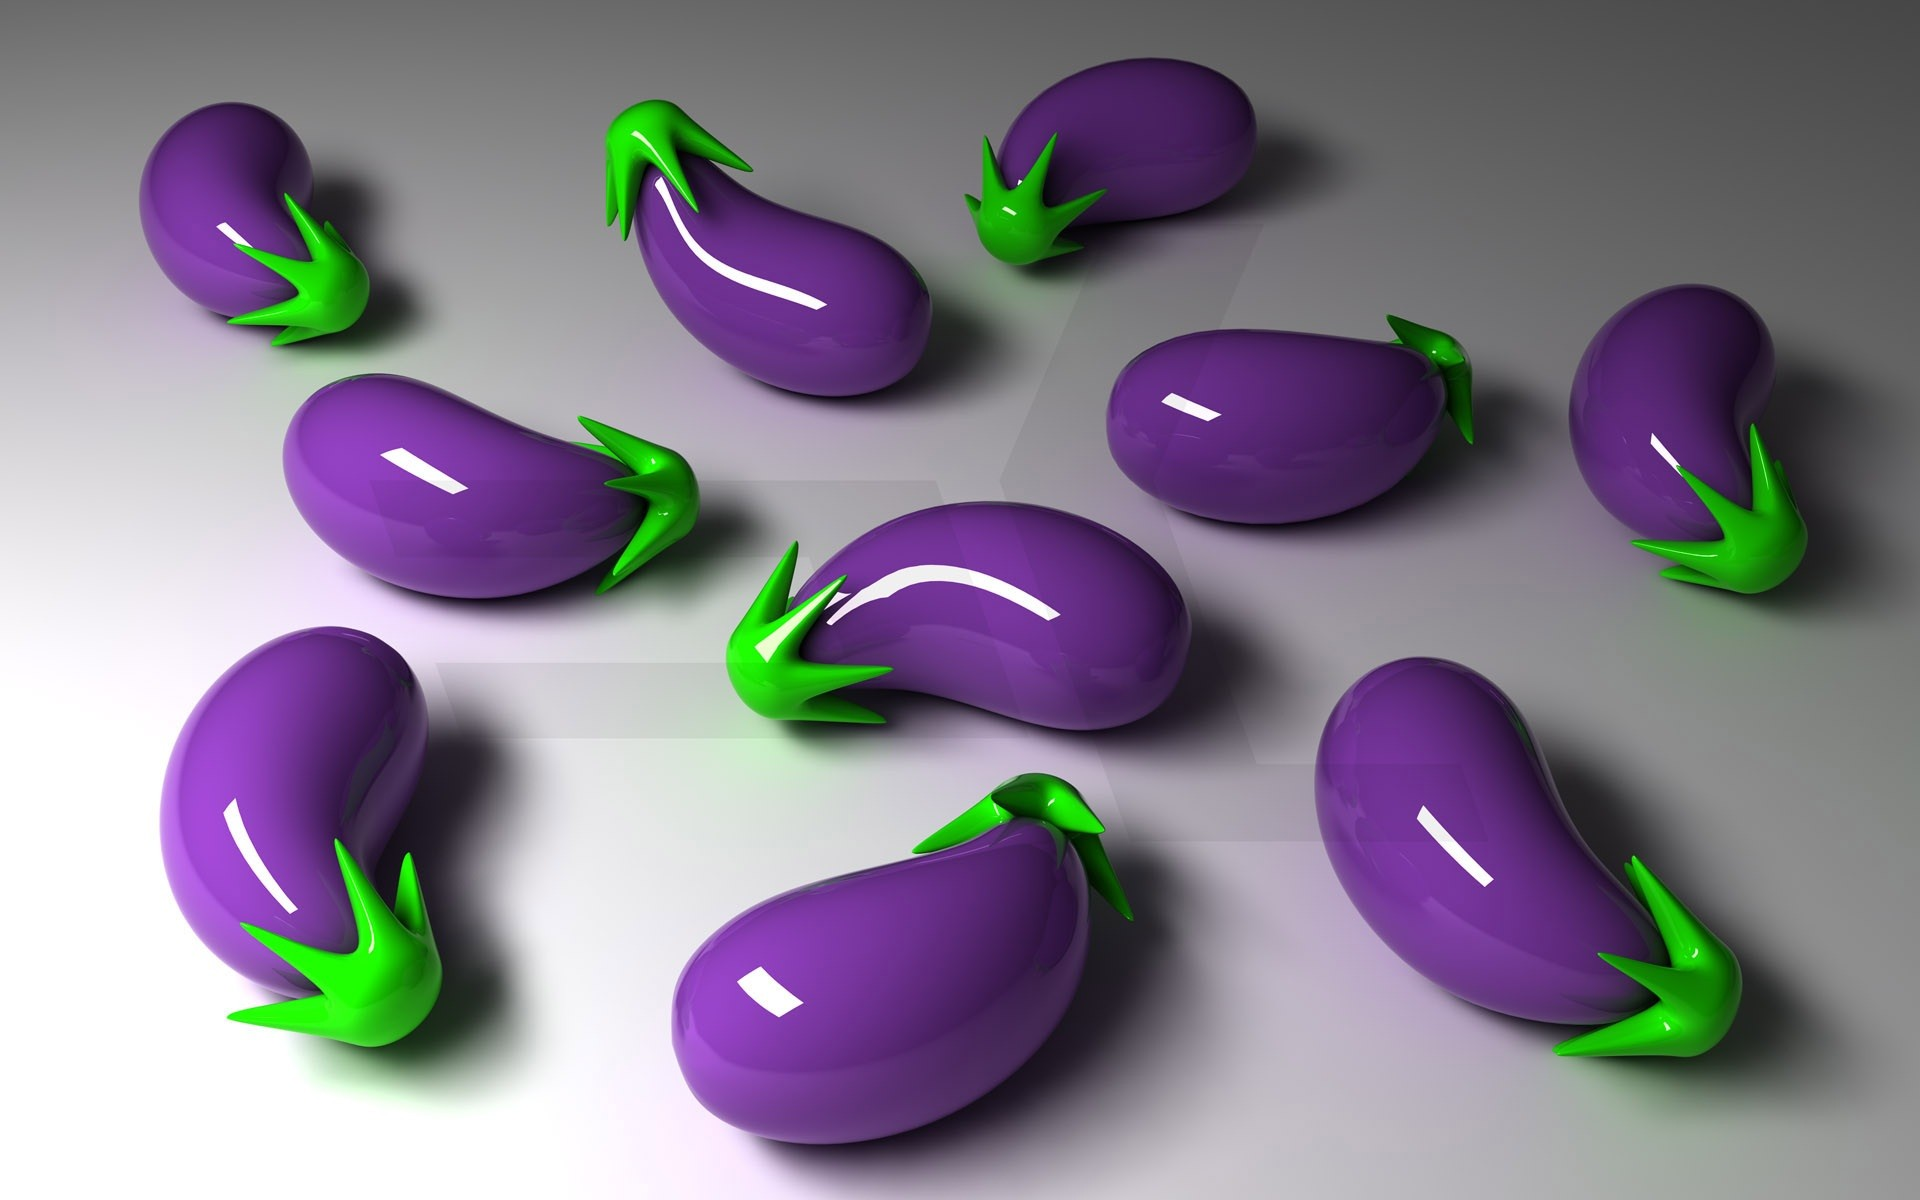 Wallpaper Hp 3d Eggplants Full Hd Wallpaper And Background Image